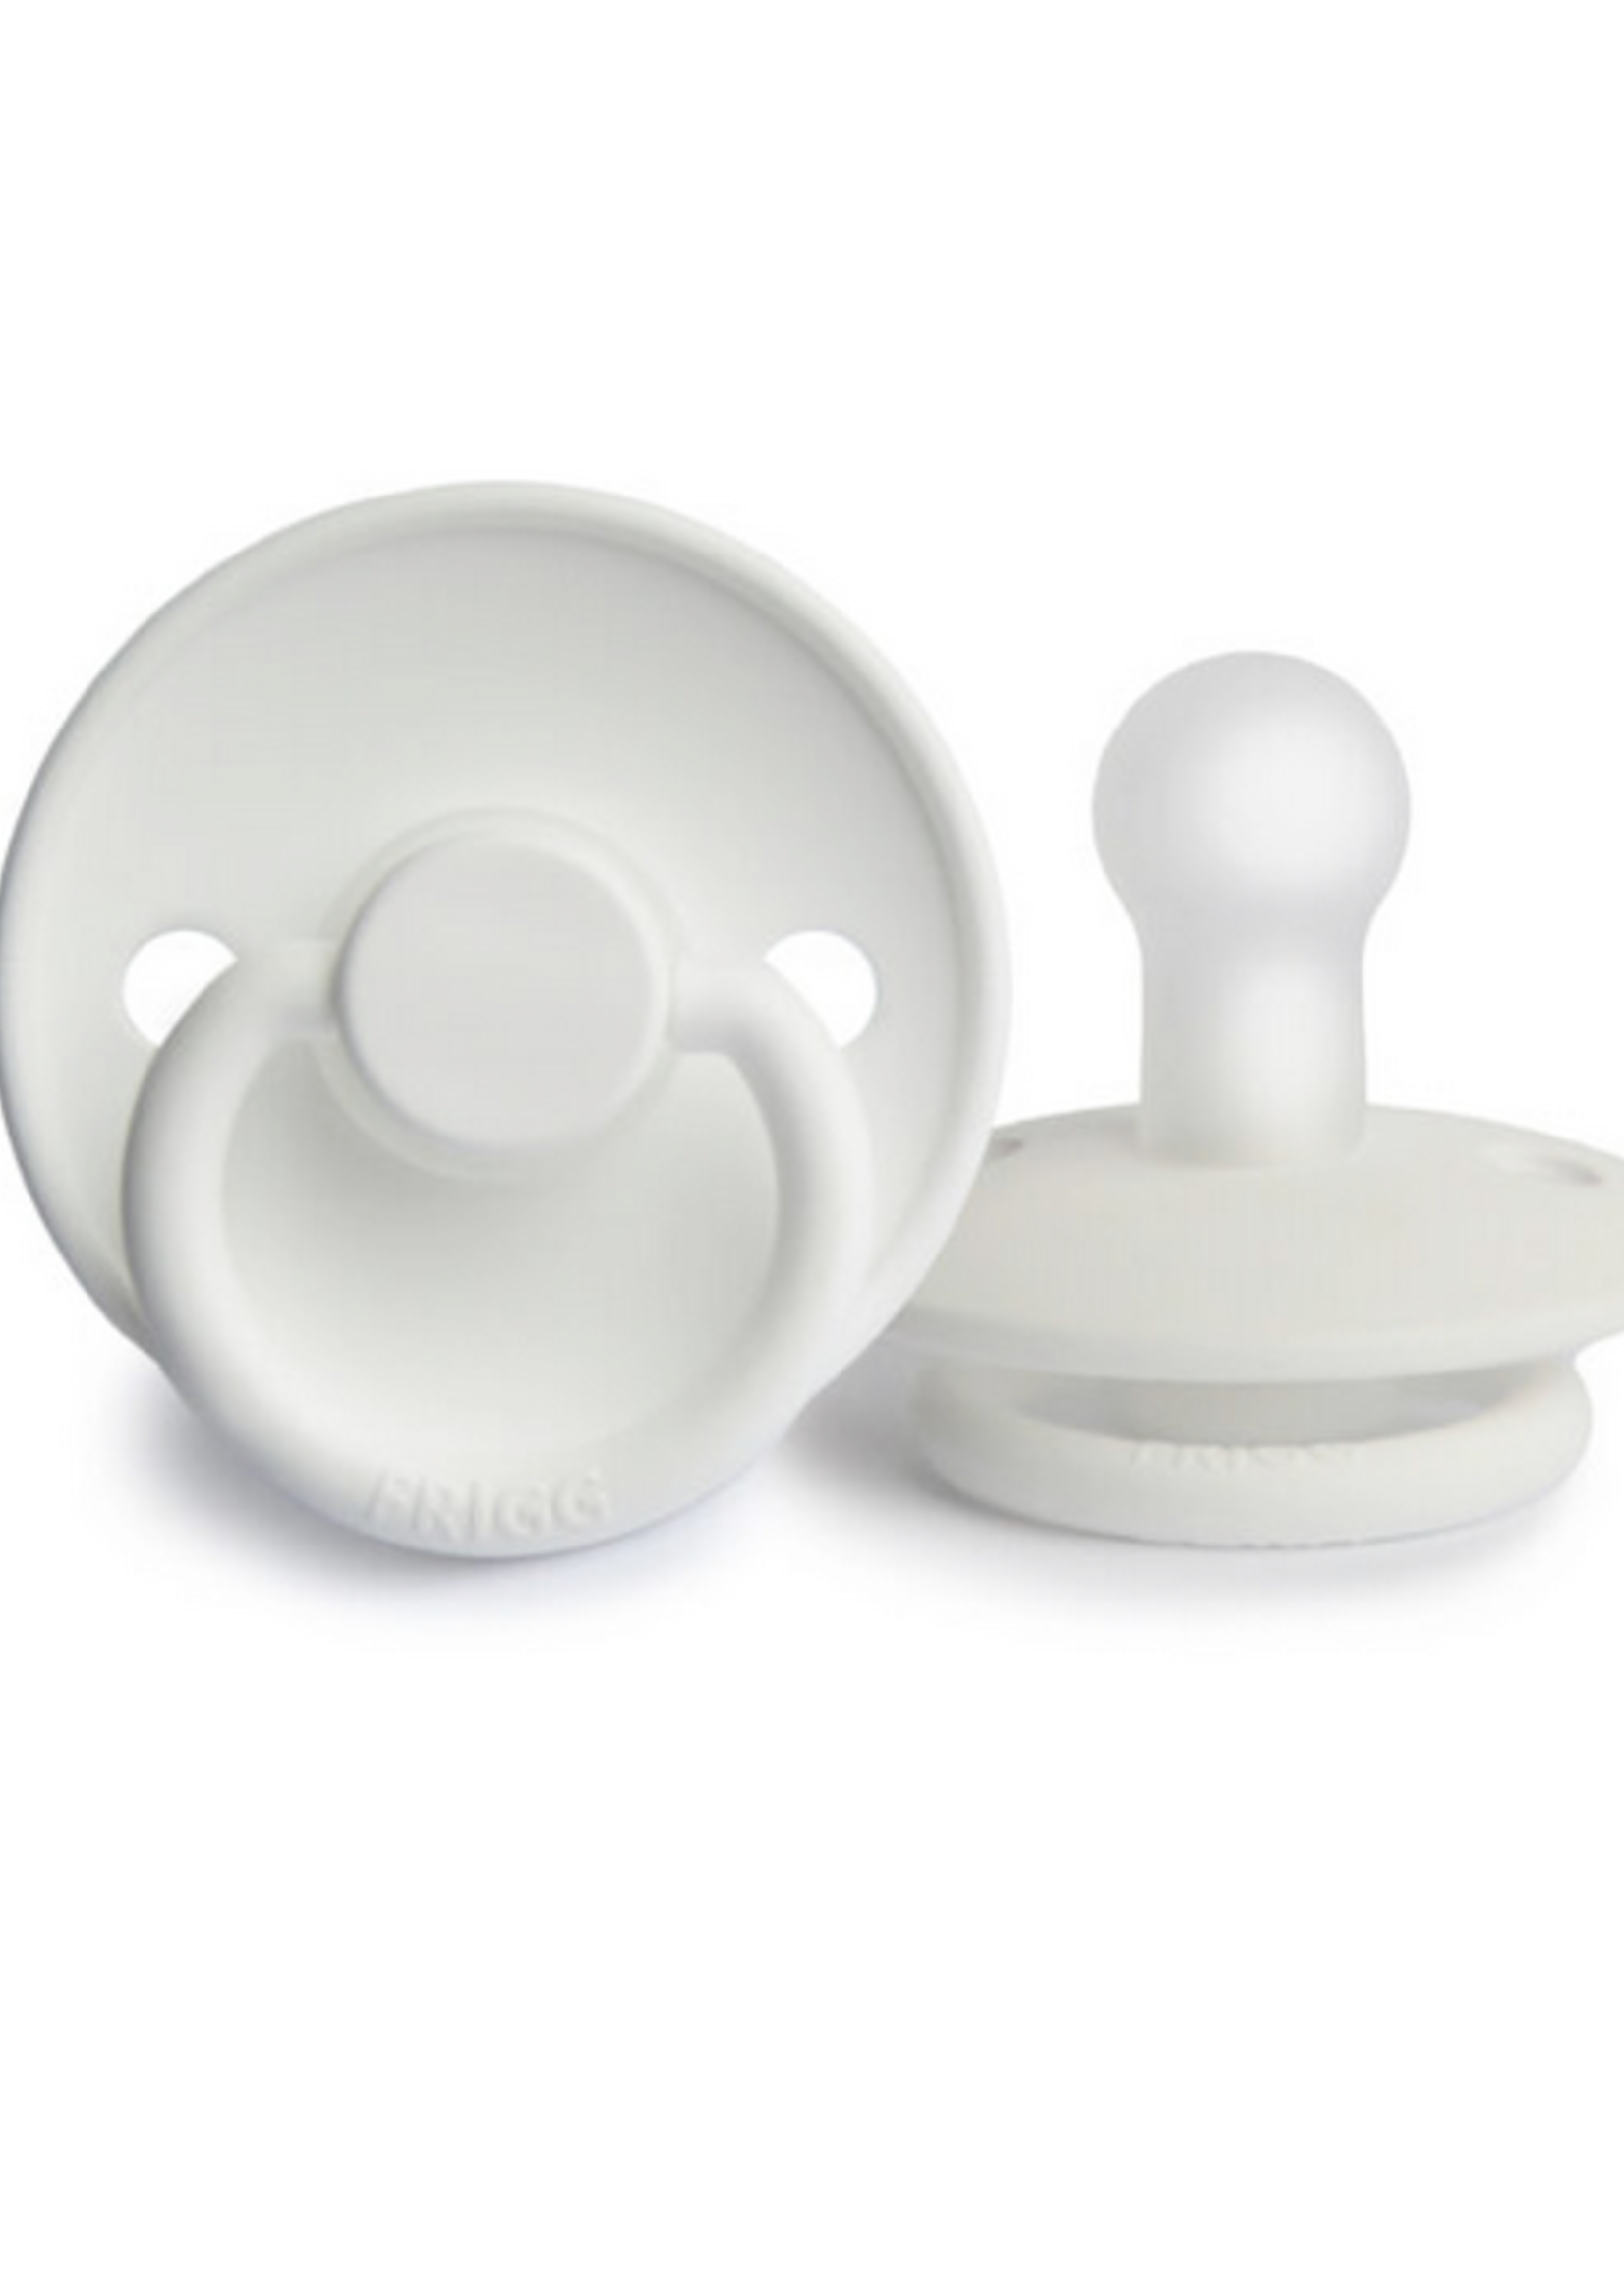 Elitaire Petite FRIGG Silicone Pacifier in Bright White (6-18 Months)